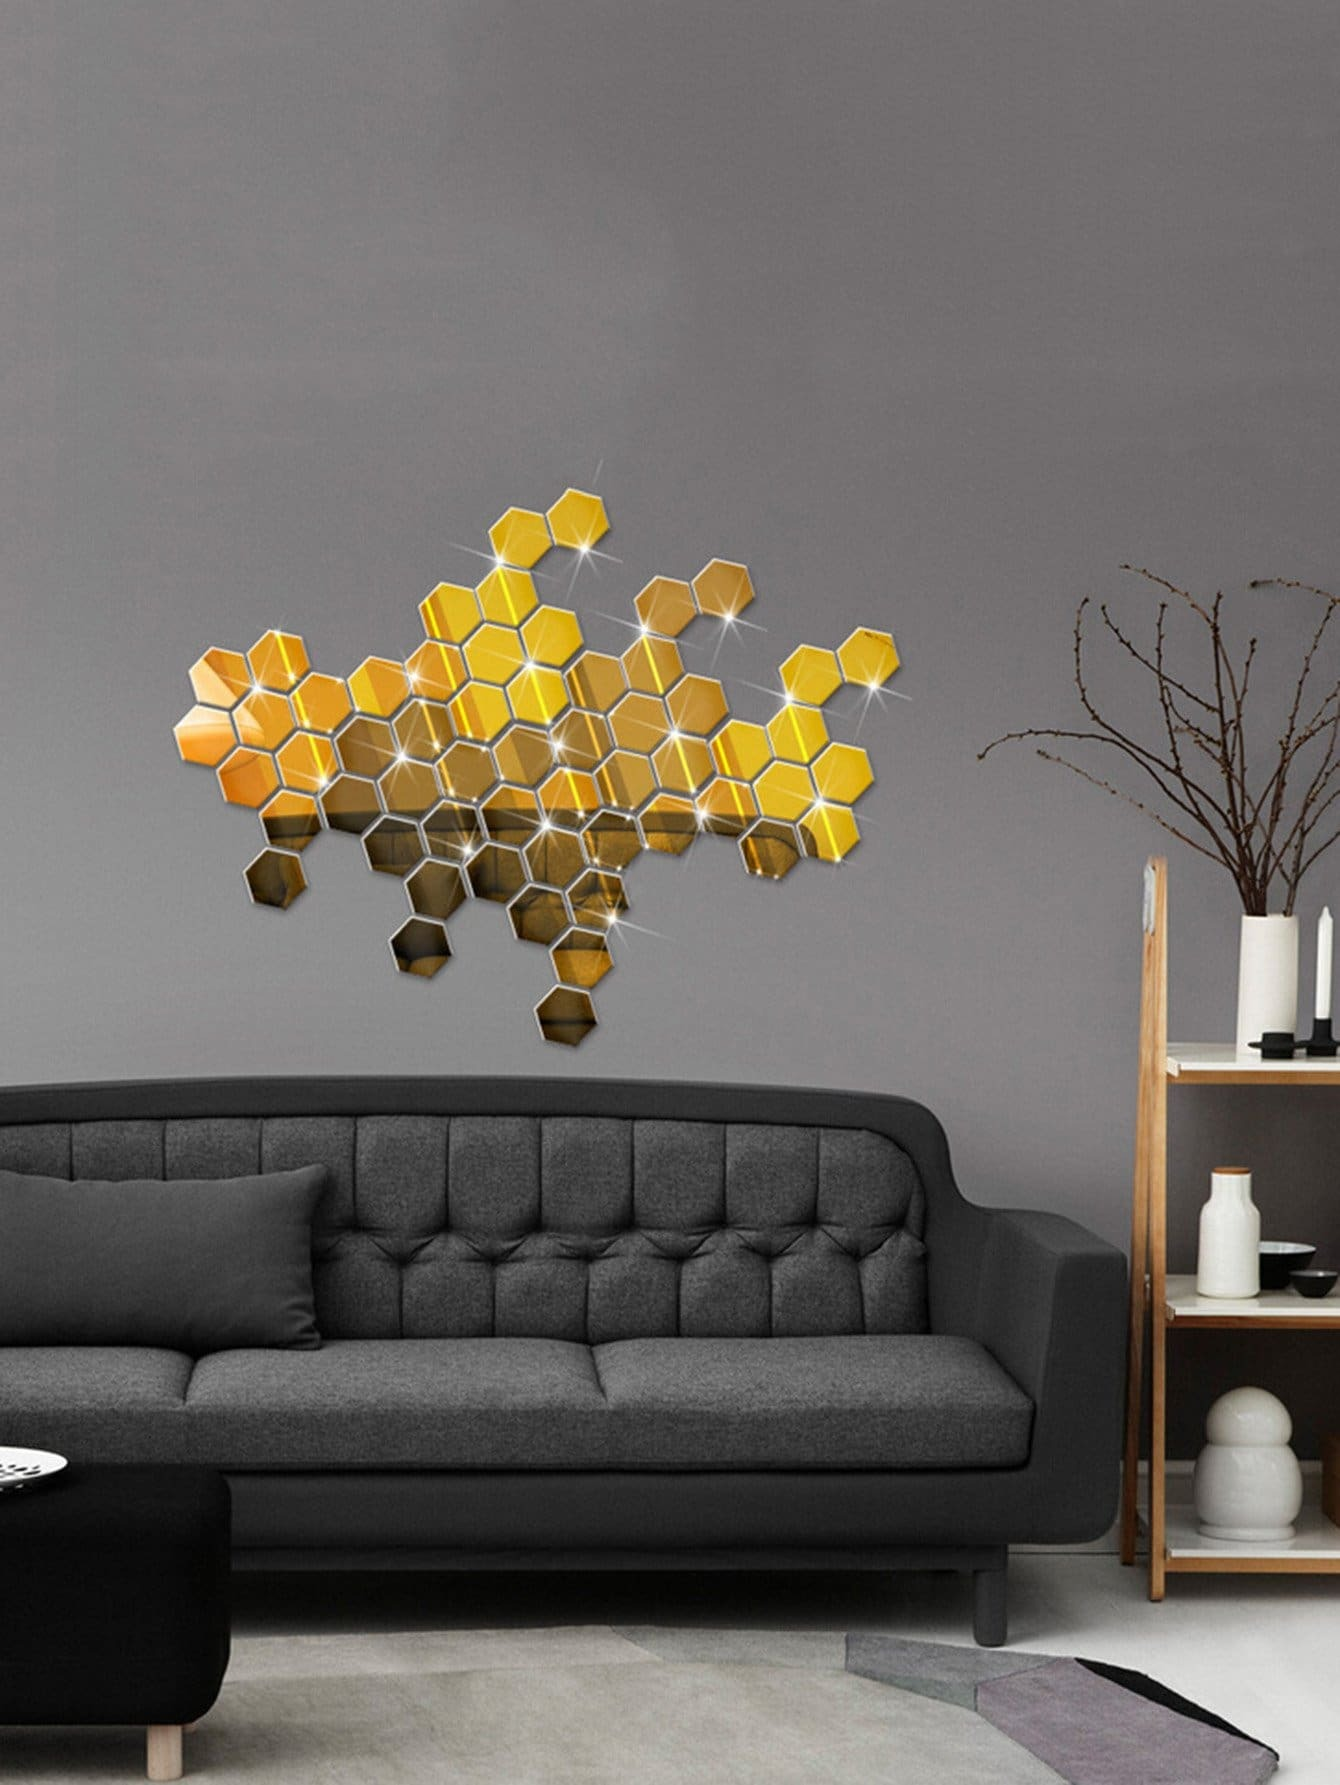 Hexagon Mirror Wall Sticker Set mayer boch 143 092 дворники пластик 2шт 18